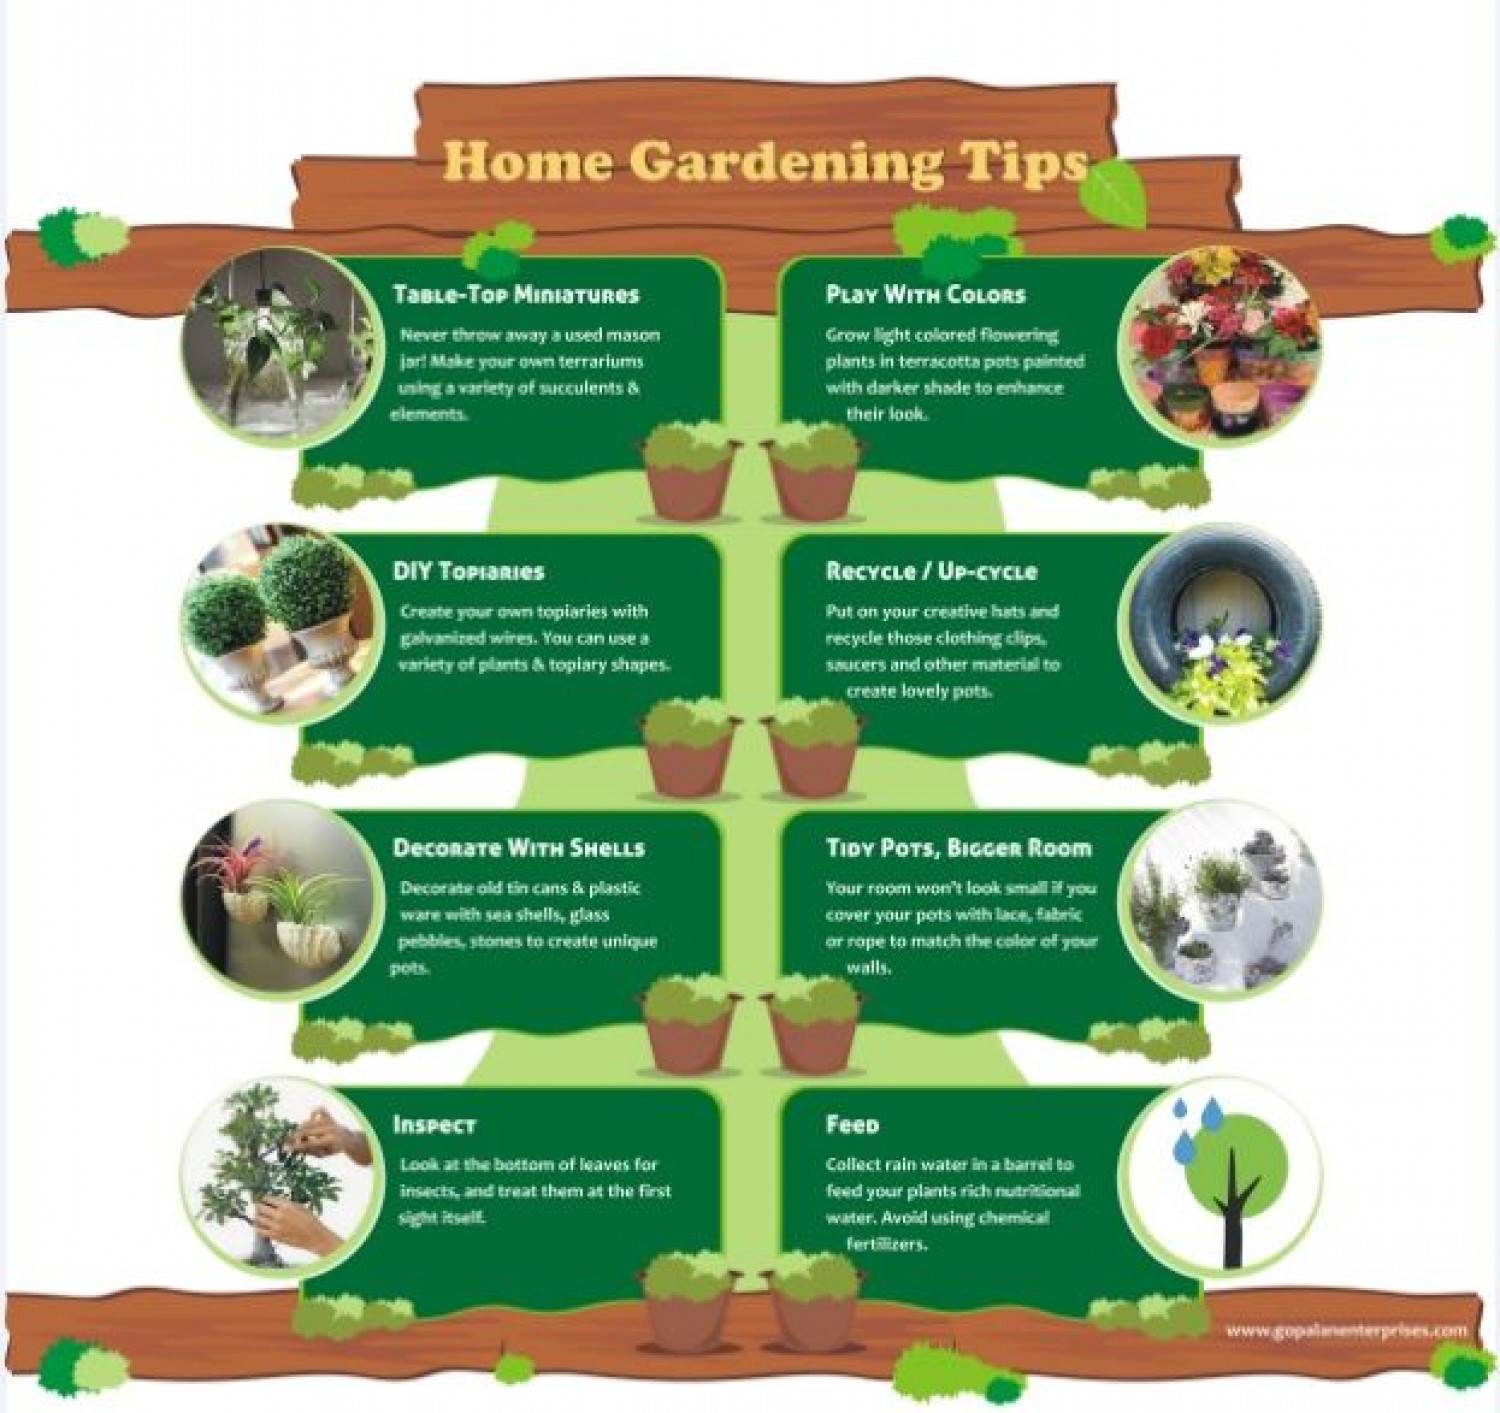 Properties in bangalore home gardening tips for Gardening tools bangalore